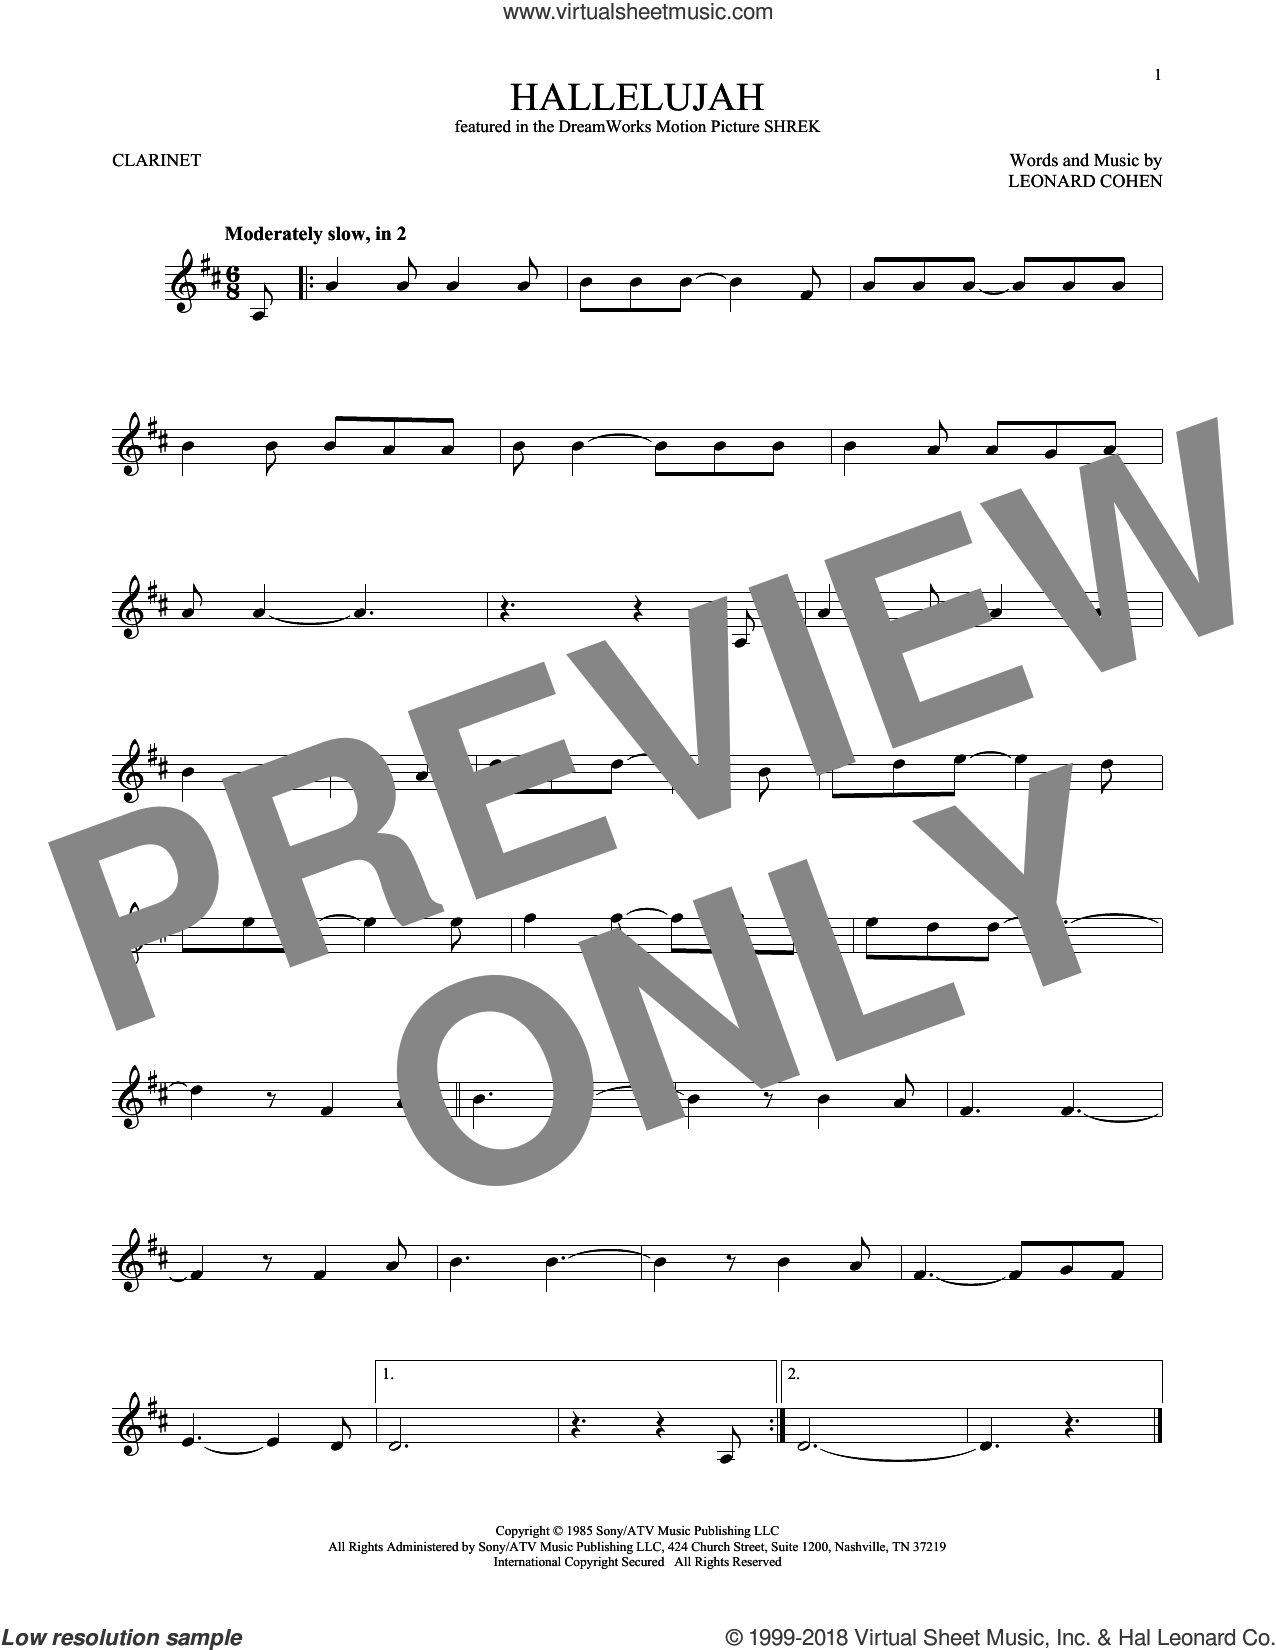 Hallelujah sheet music for clarinet solo by Leonard Cohen, Justin Timberlake & Matt Morris featuring Charlie Sexton and Lee DeWyze, intermediate skill level